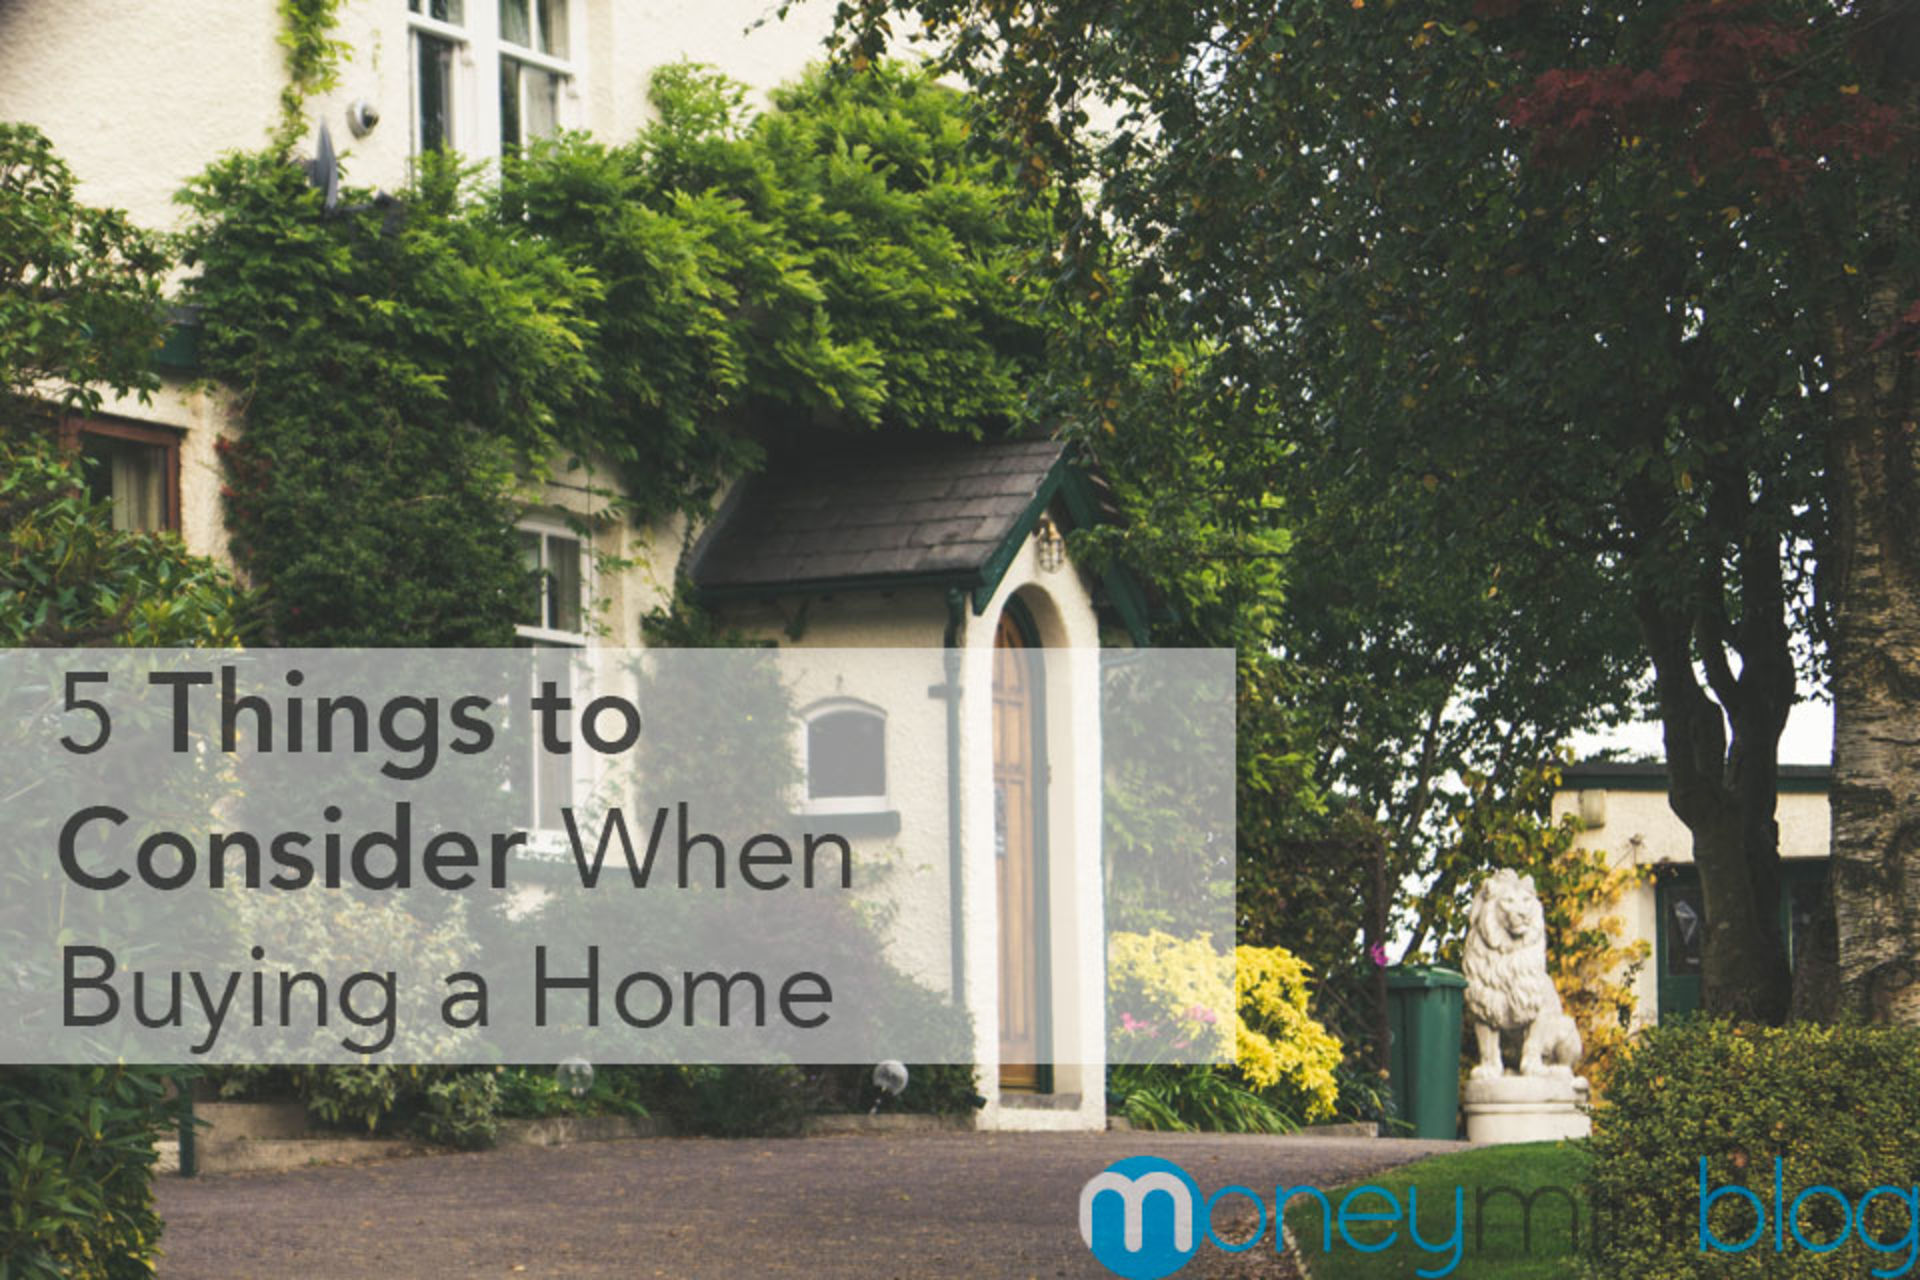 5 Things to Consider When Buying a Home